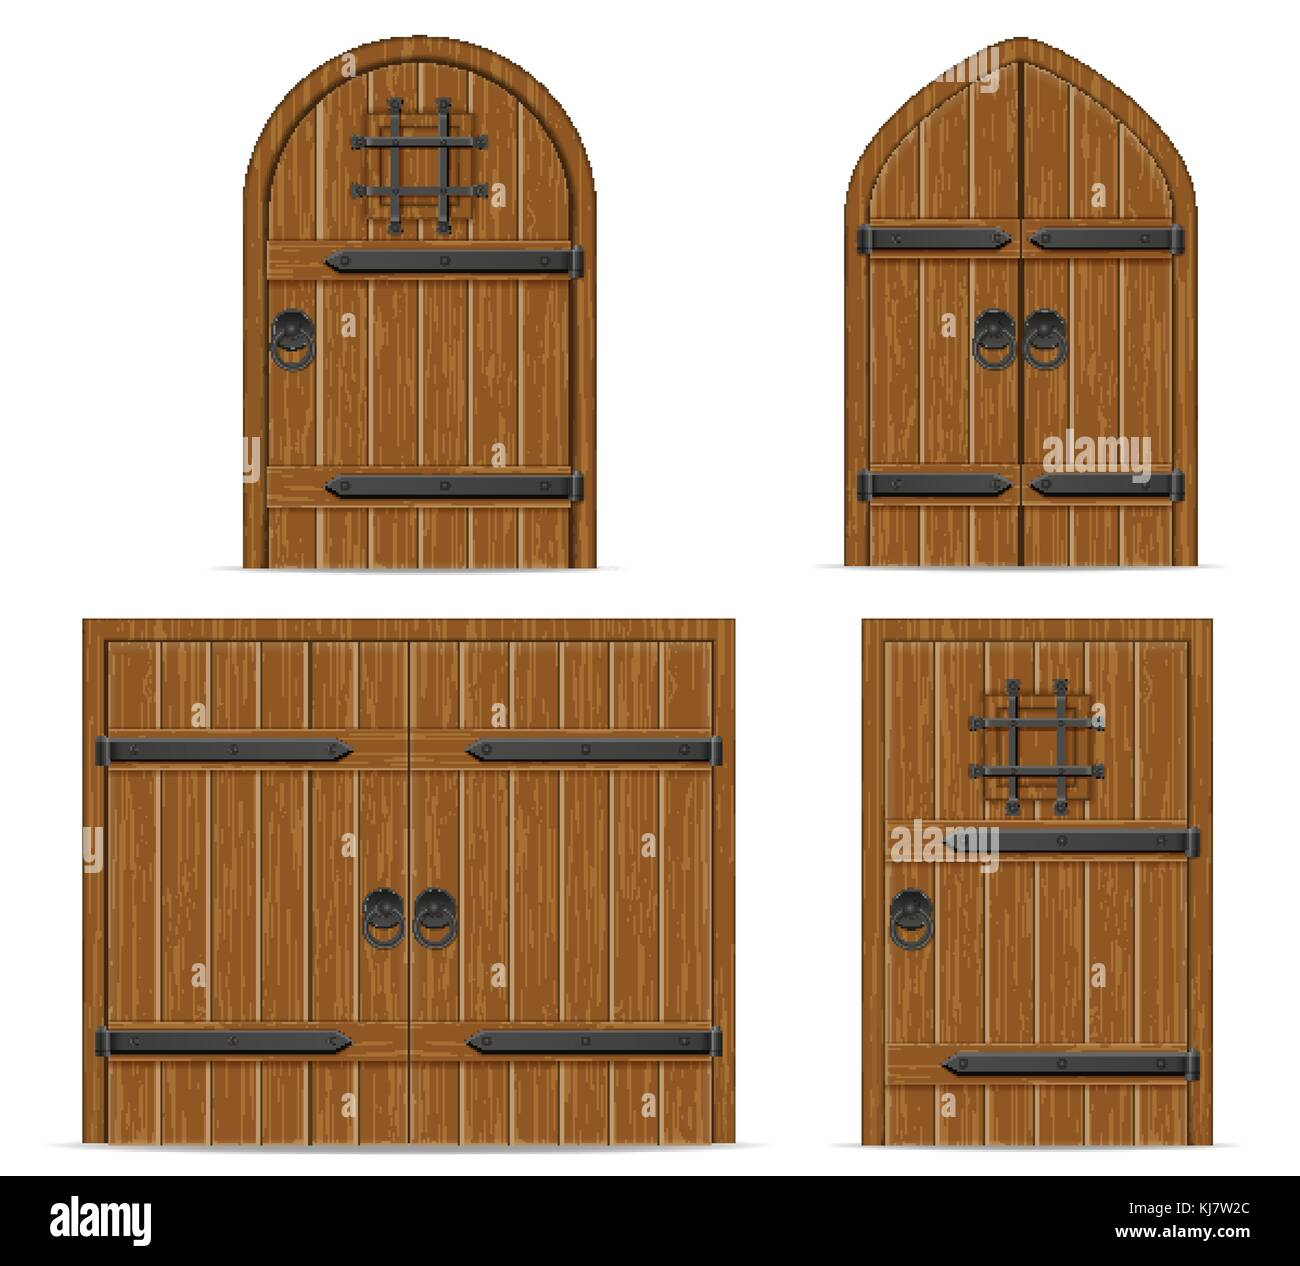 old wooden door vector illustration isolated on white background - Stock Vector  sc 1 st  Alamy & Metal Castle Door Stock Vector Images - Alamy